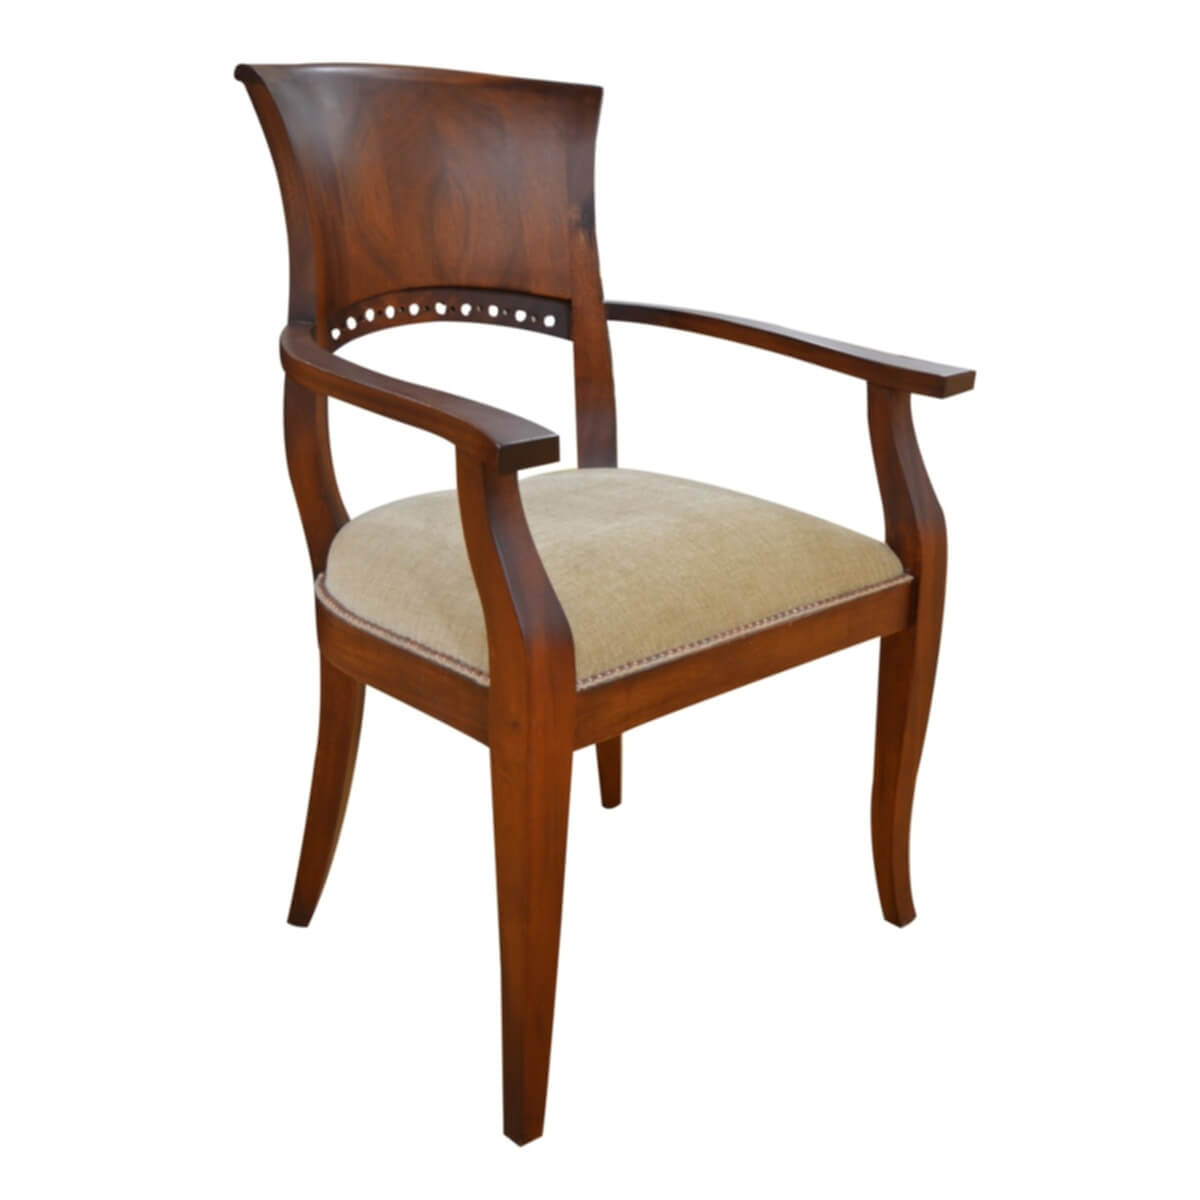 acel-dining-chair-product-image